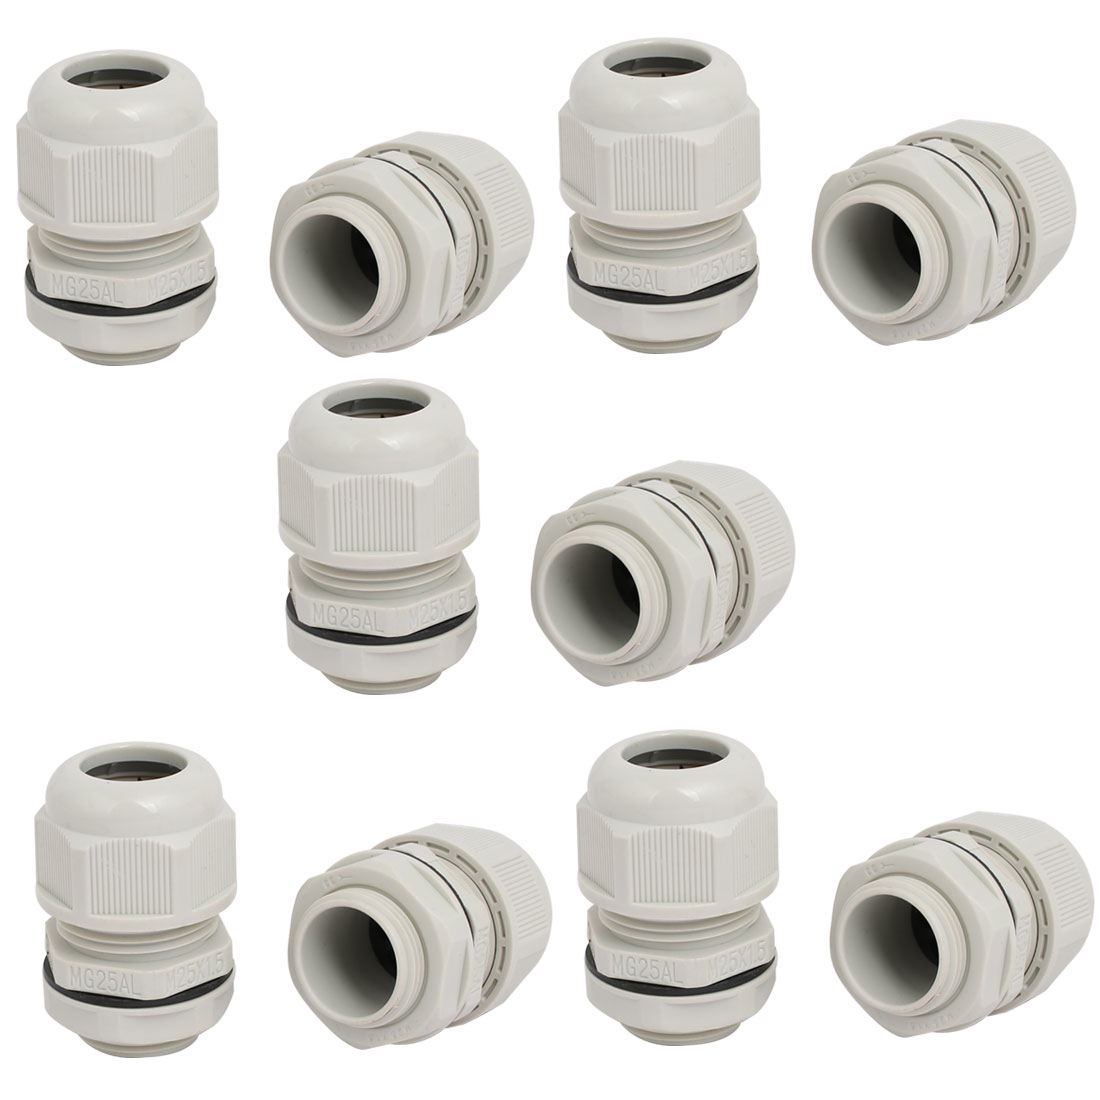 M25x1.5mm 5mm-7.1mm Adjustable 4 Holes Nylon Cable Gland Joint Gray 10pcs